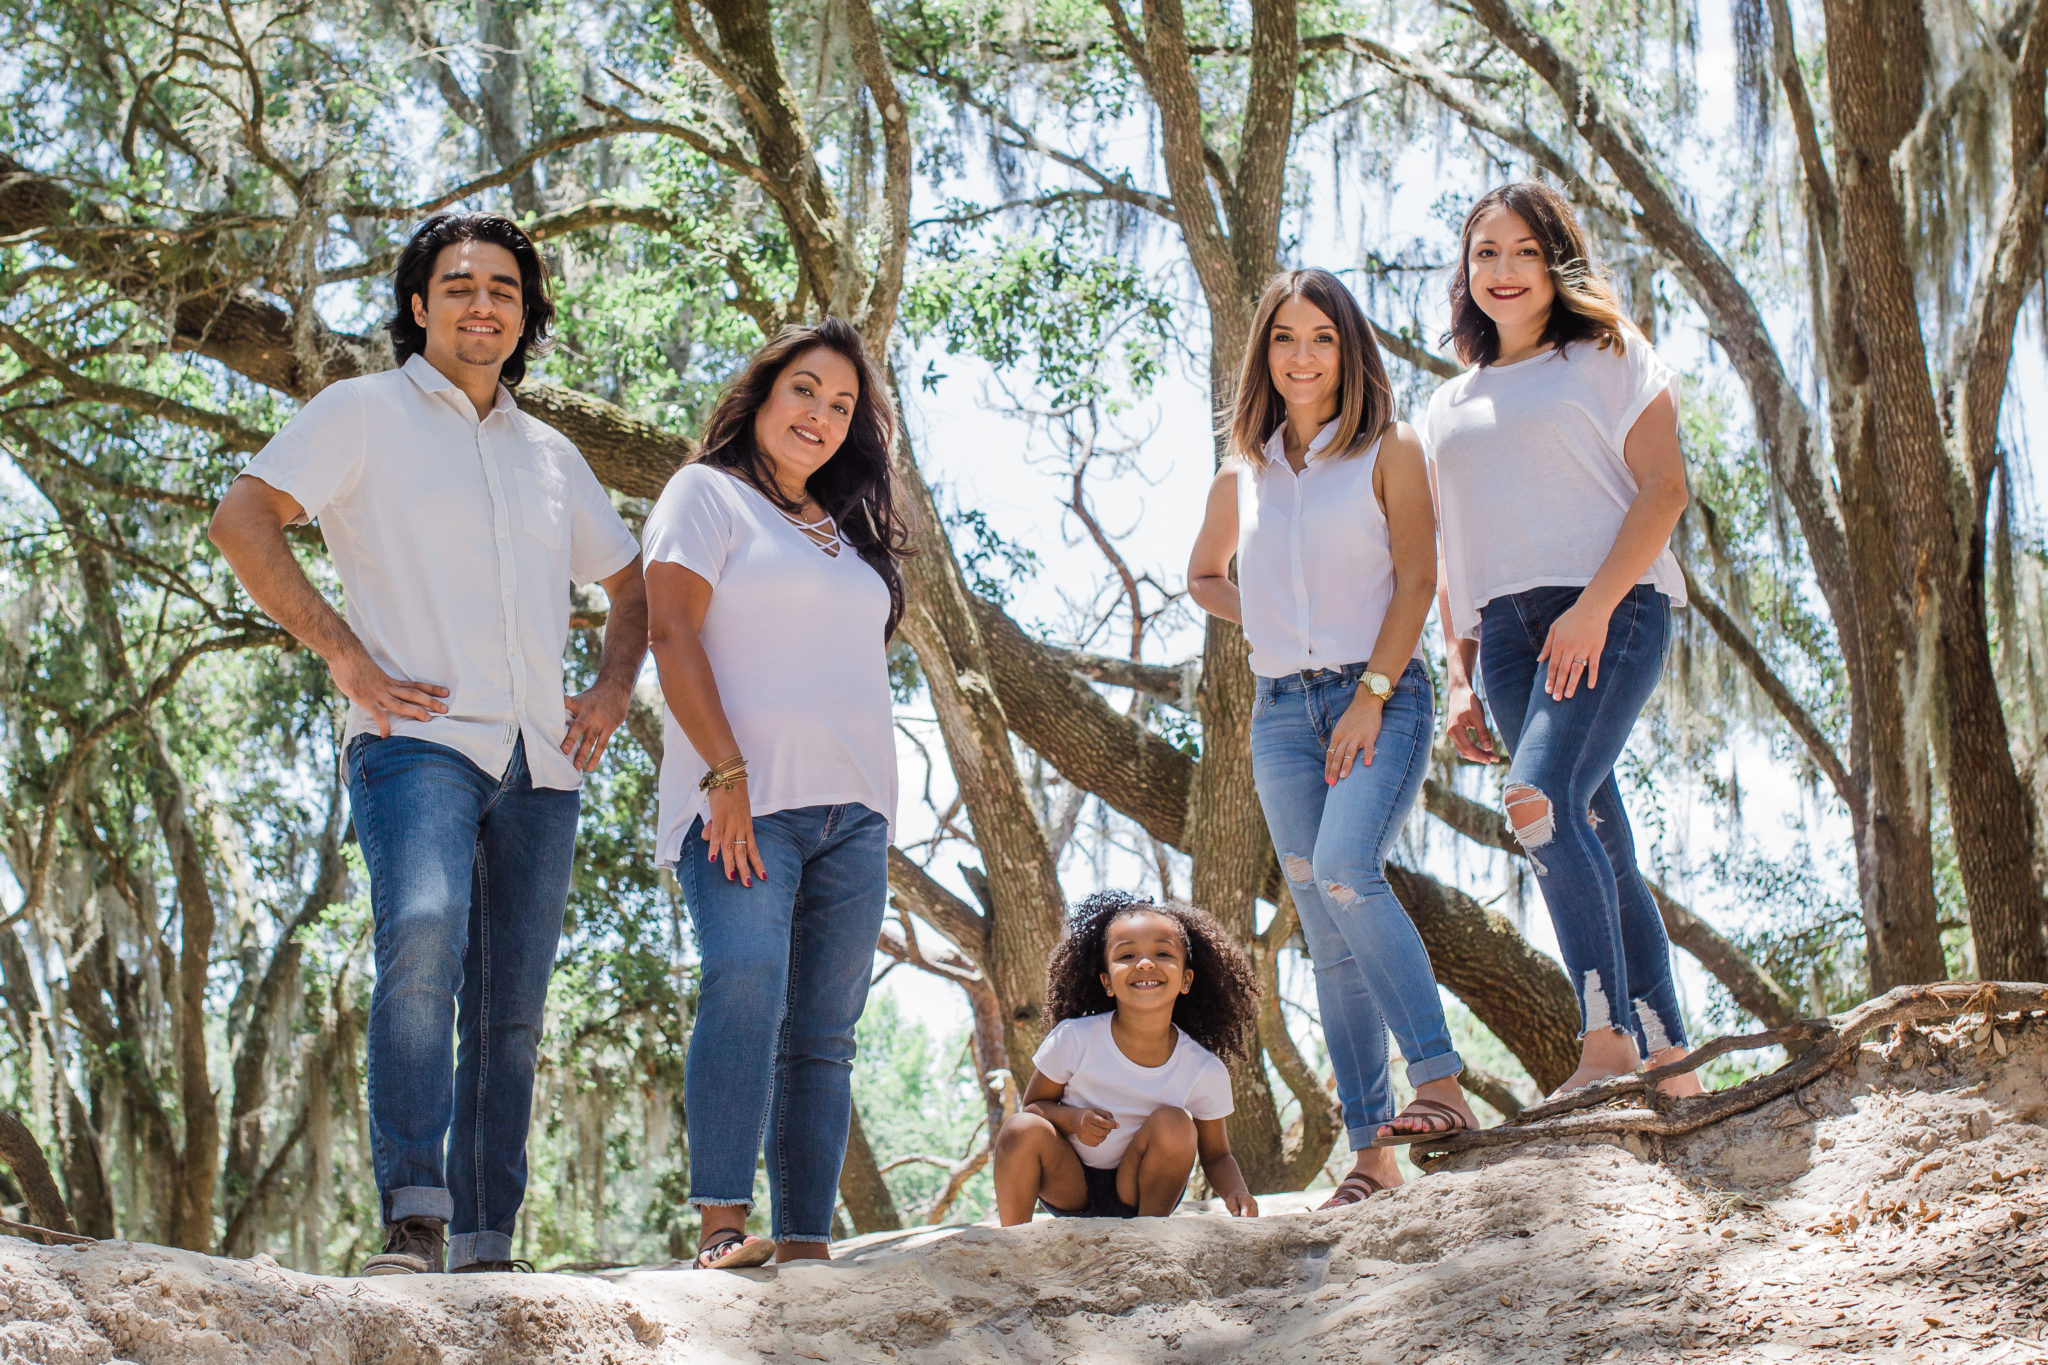 cousin photography, family photography, Tampa family photography, sibling photography